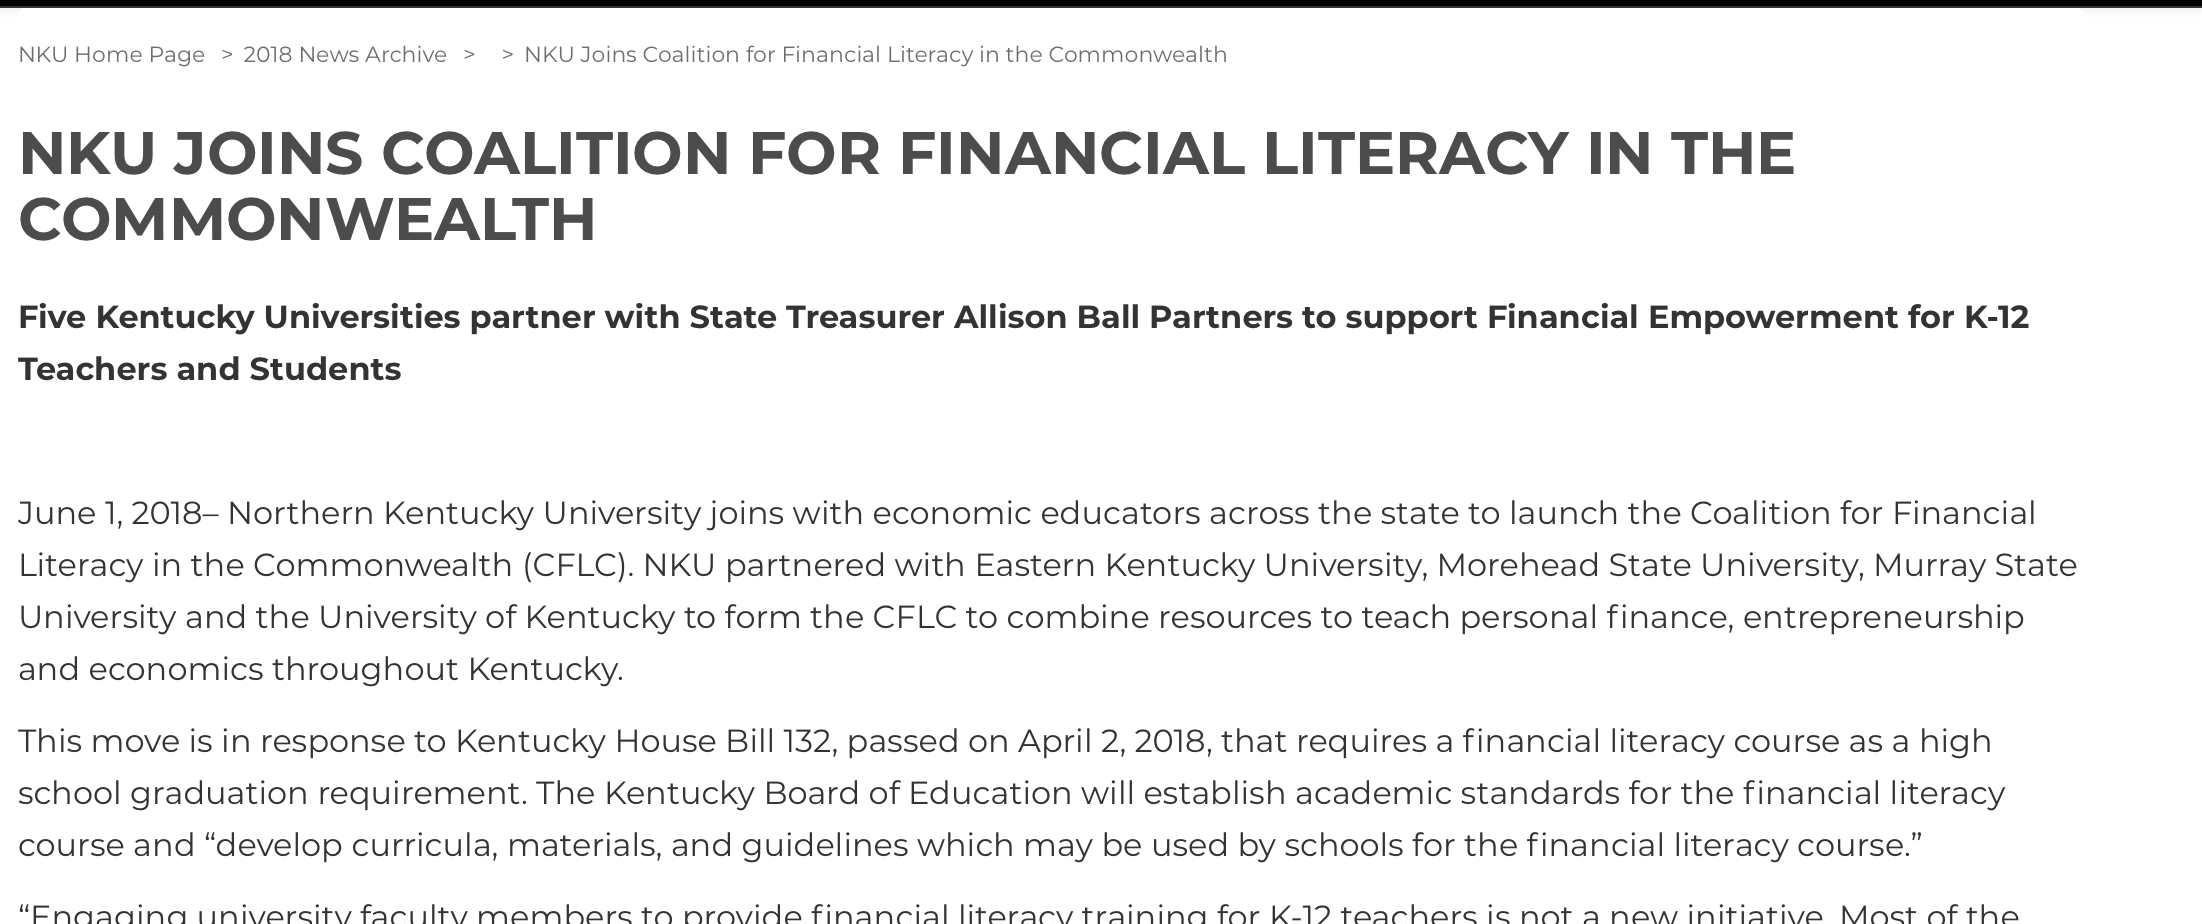 NKU Joins Financial Literacy Coalition - Five Kentucky Universities partner with State Treasurer Allison Ball Partners to support Financial Empowerment for K-12 Teachers and Students.Read More